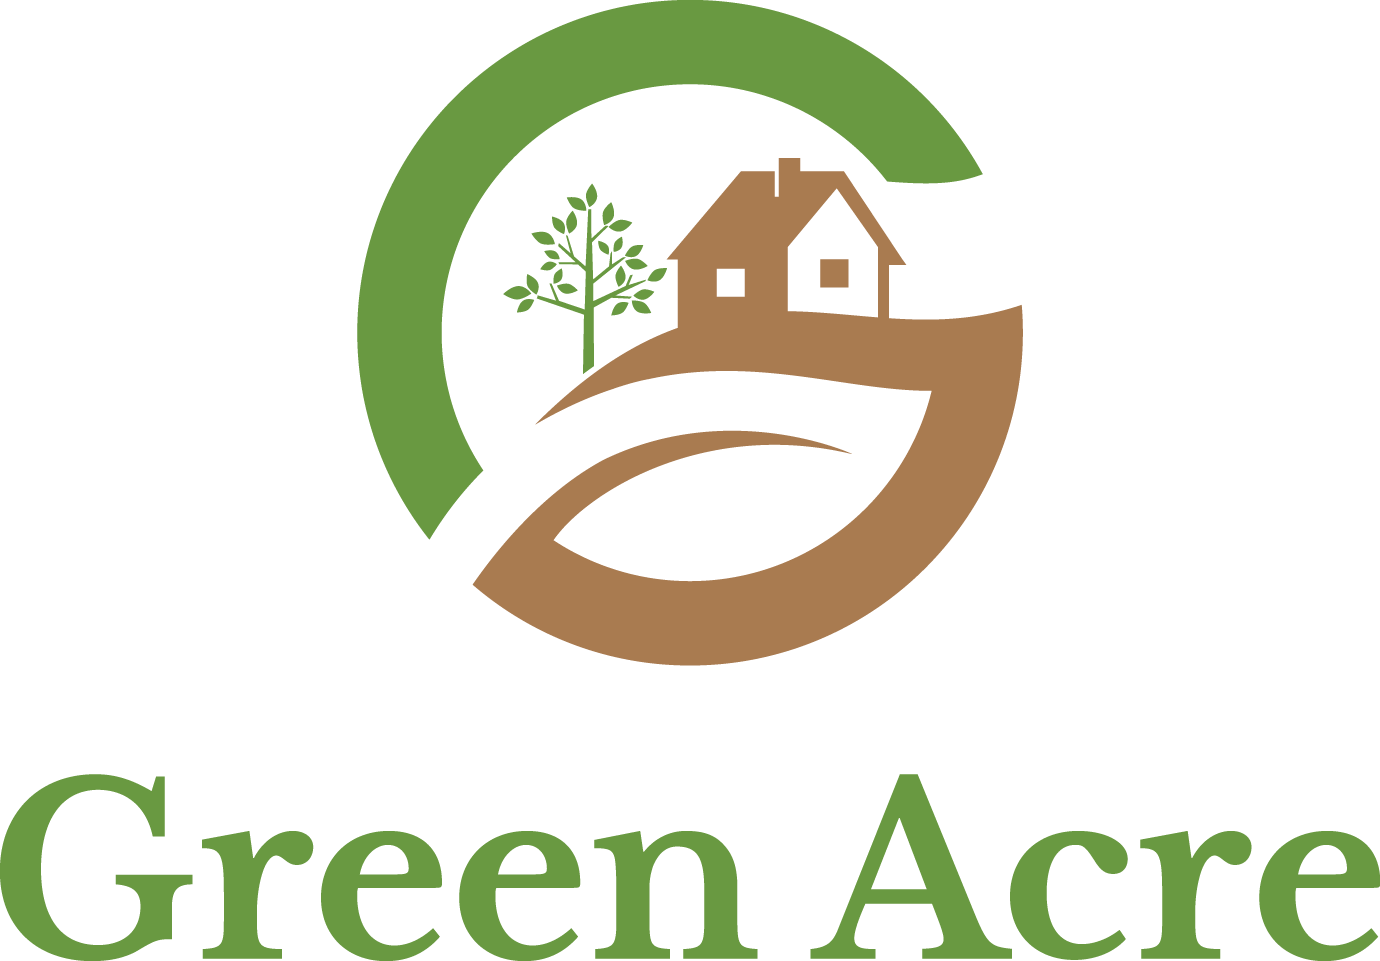 Greenacre.be logo